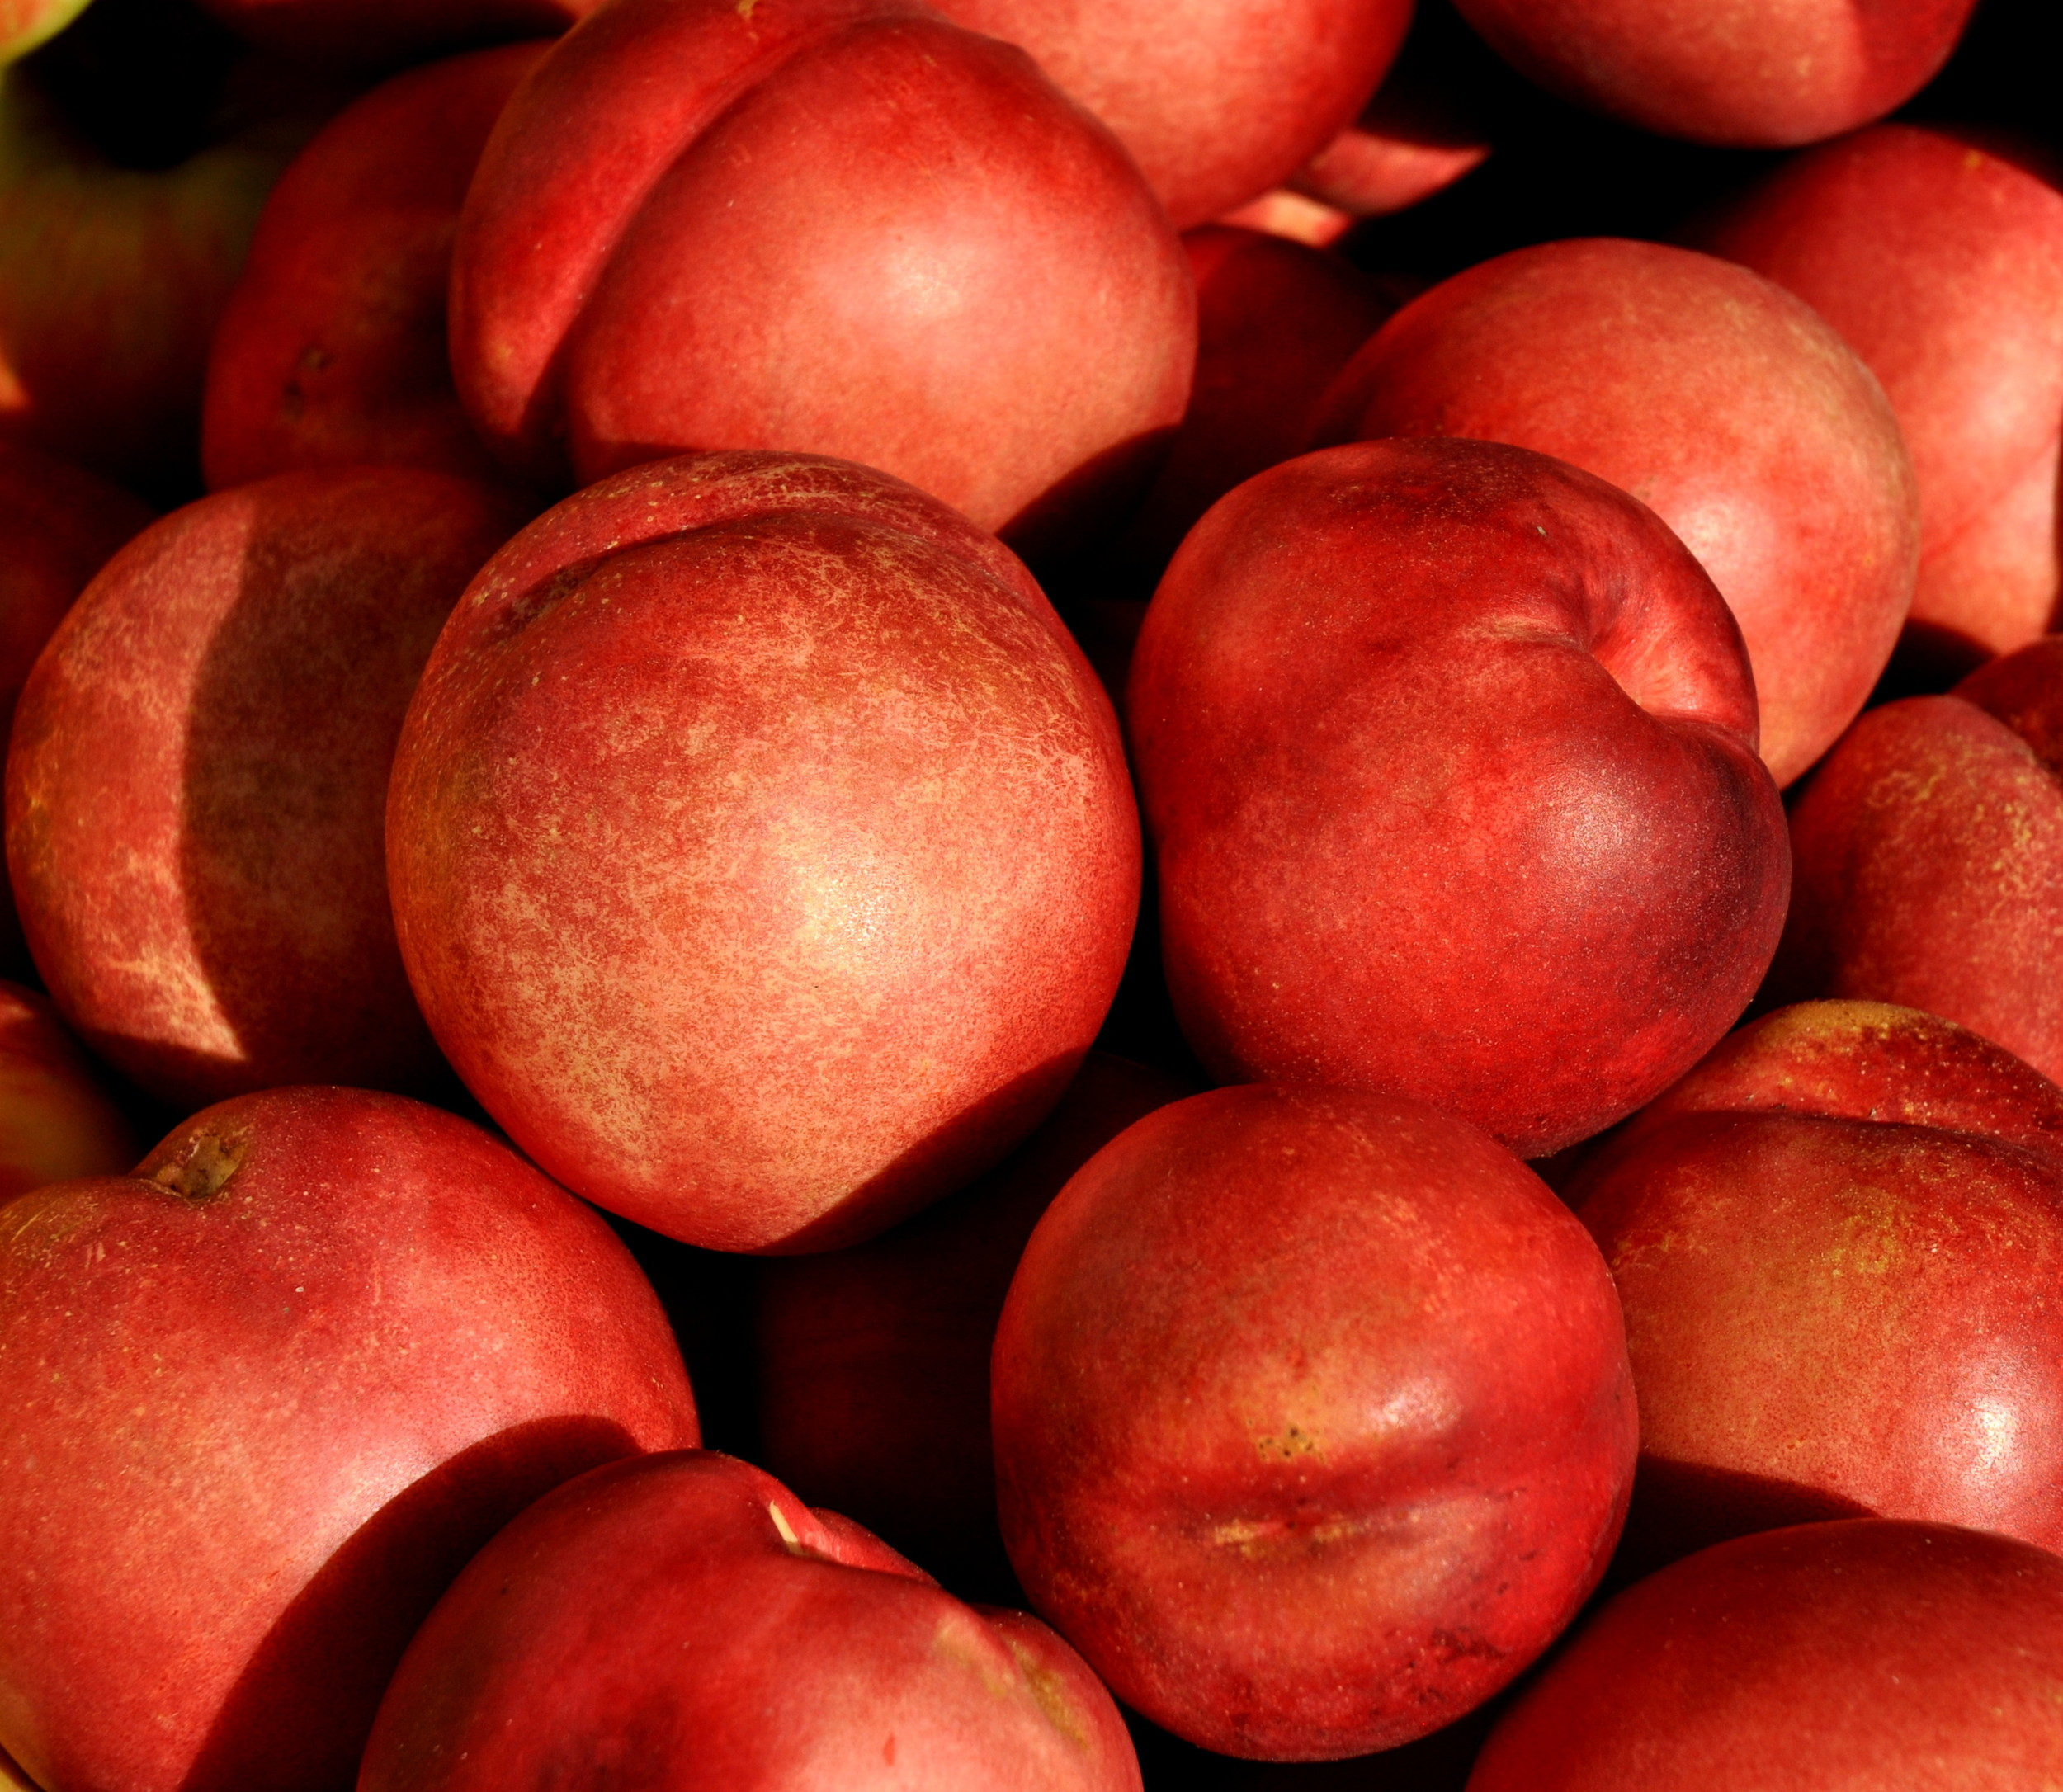 Nectarplums from Collins Family Orchards. Photo copyright 2013 by Zachary D. Lyons.